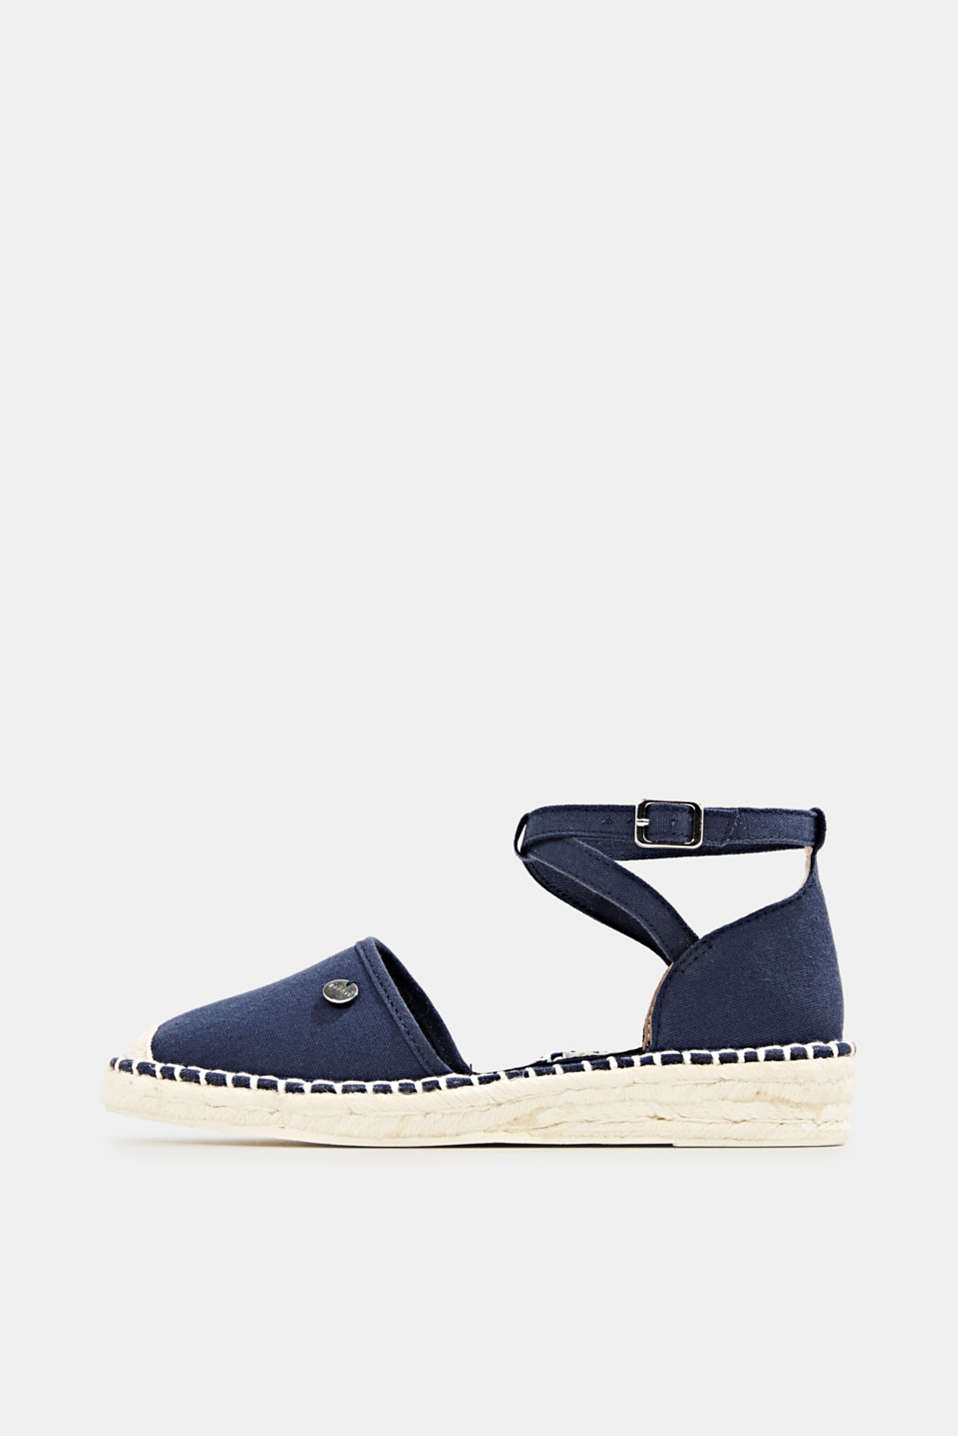 Esprit - Canvas espadrille sandals